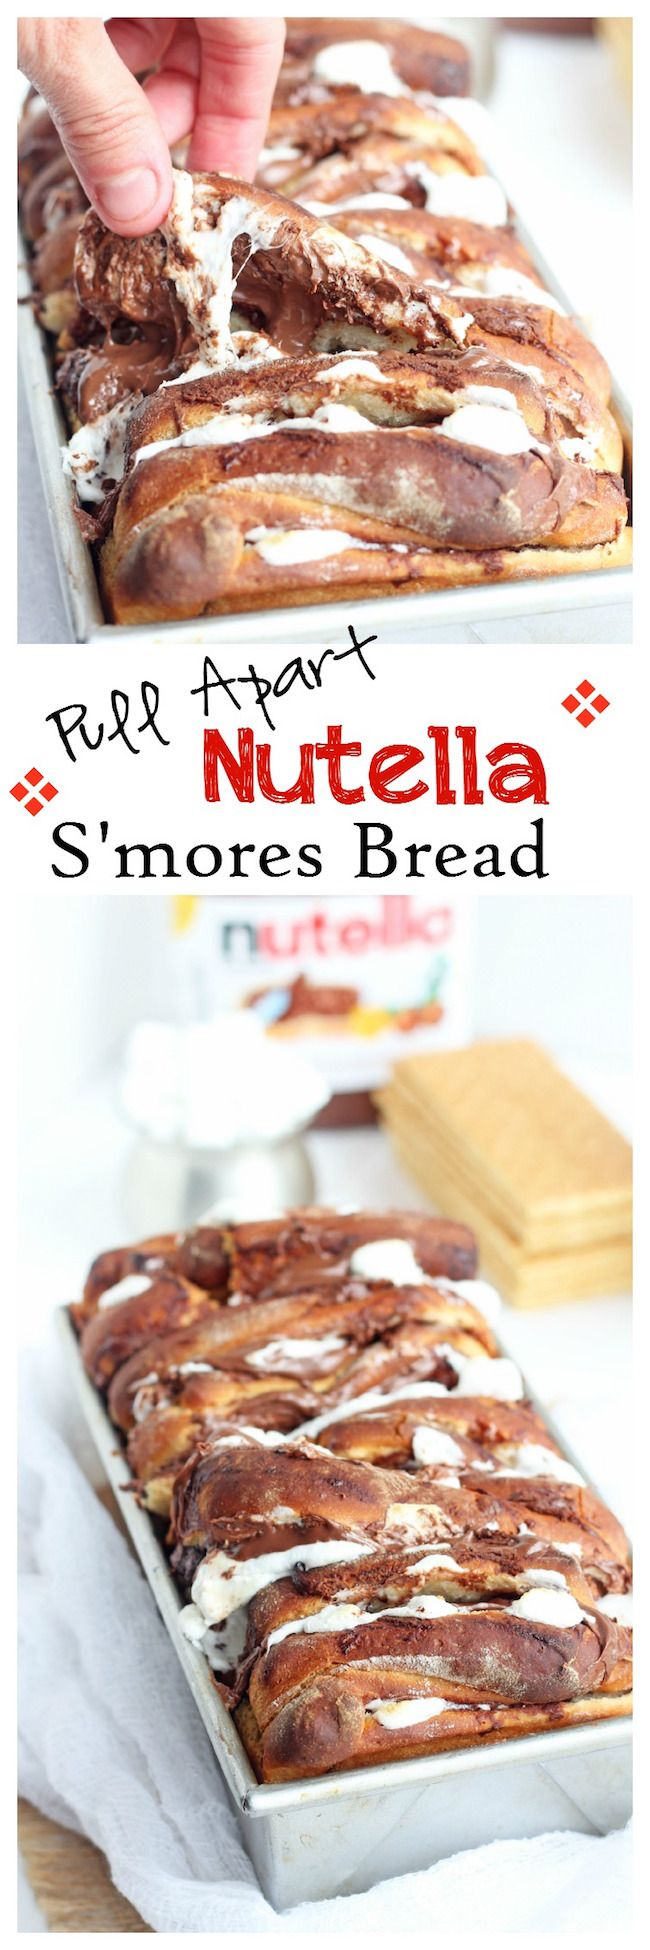 ... Nutella!!!!! on Pinterest | Nutella bar, Cake cookies and Nutella